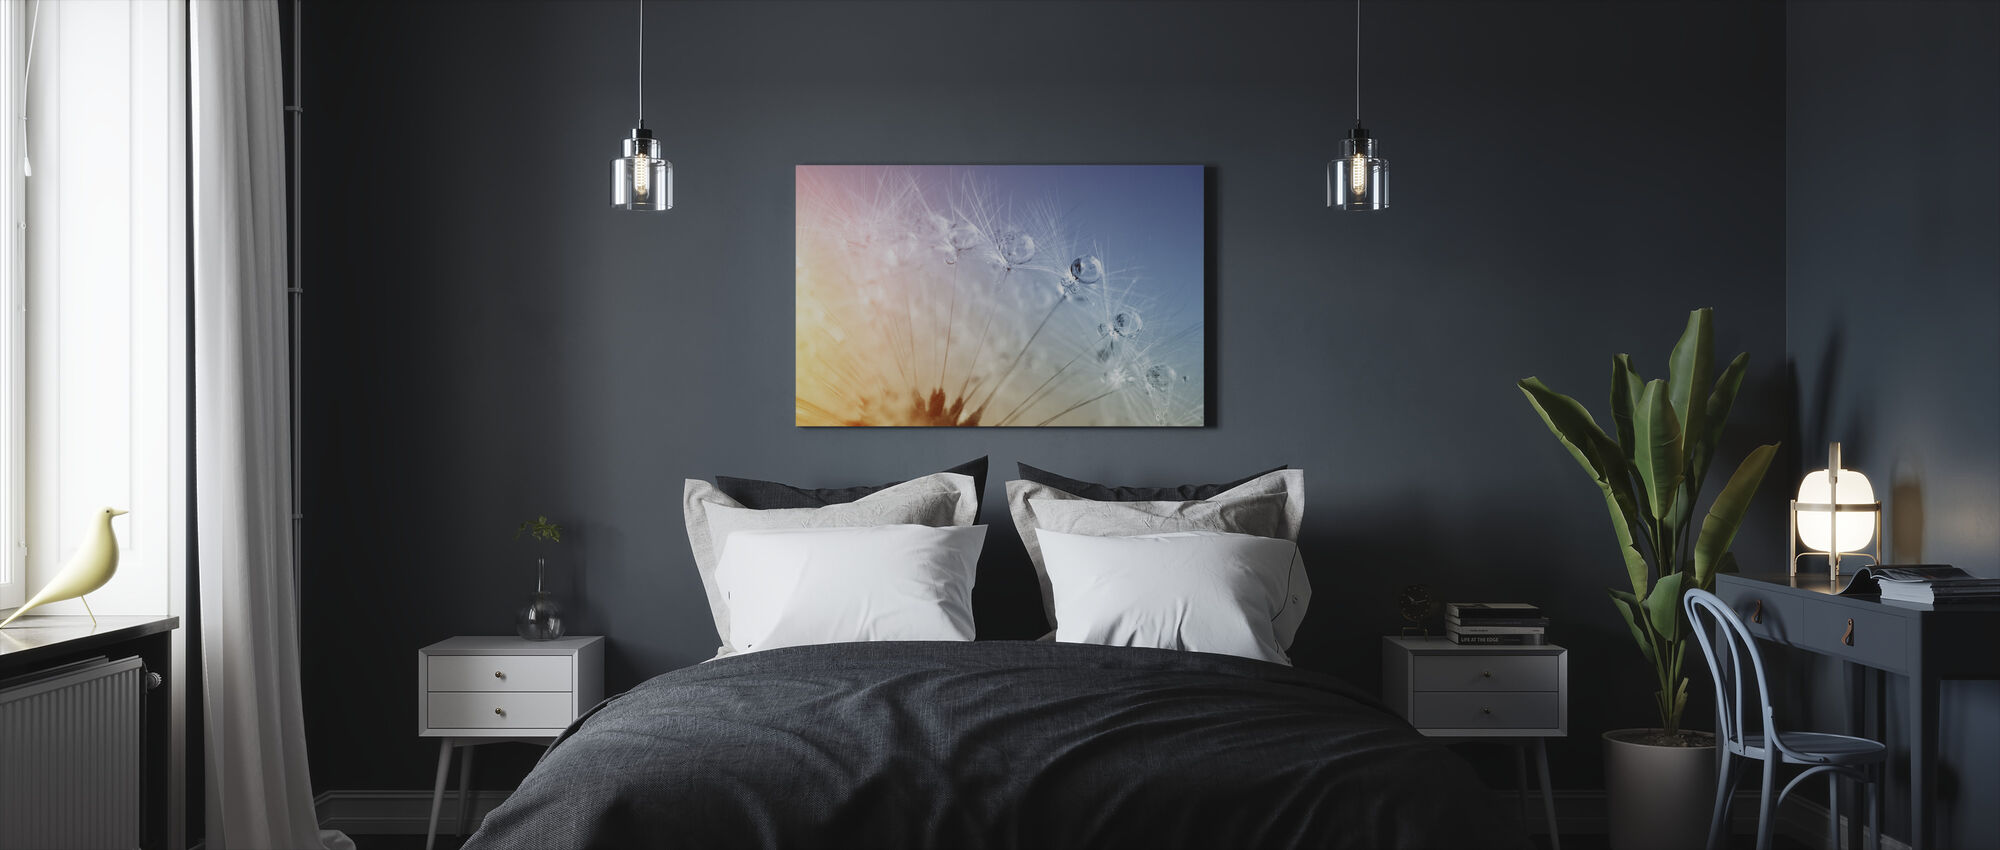 Drops on Dandelion Seed - Canvas print - Bedroom